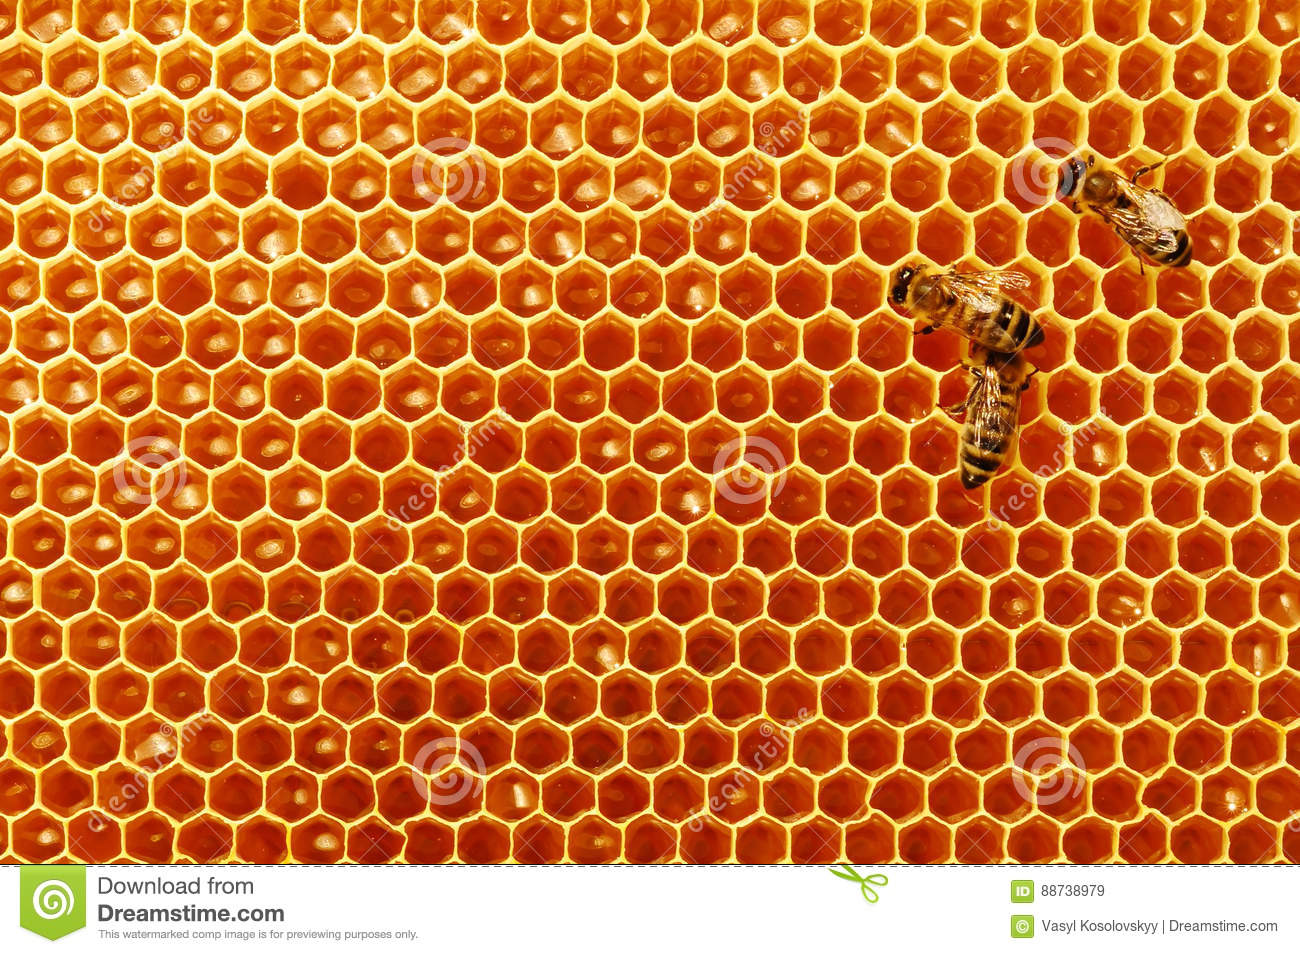 Download Bee Honeycombs With Honey And Bees. Apiculture. Stock Image - Image of beekeeper, animals: 88738979